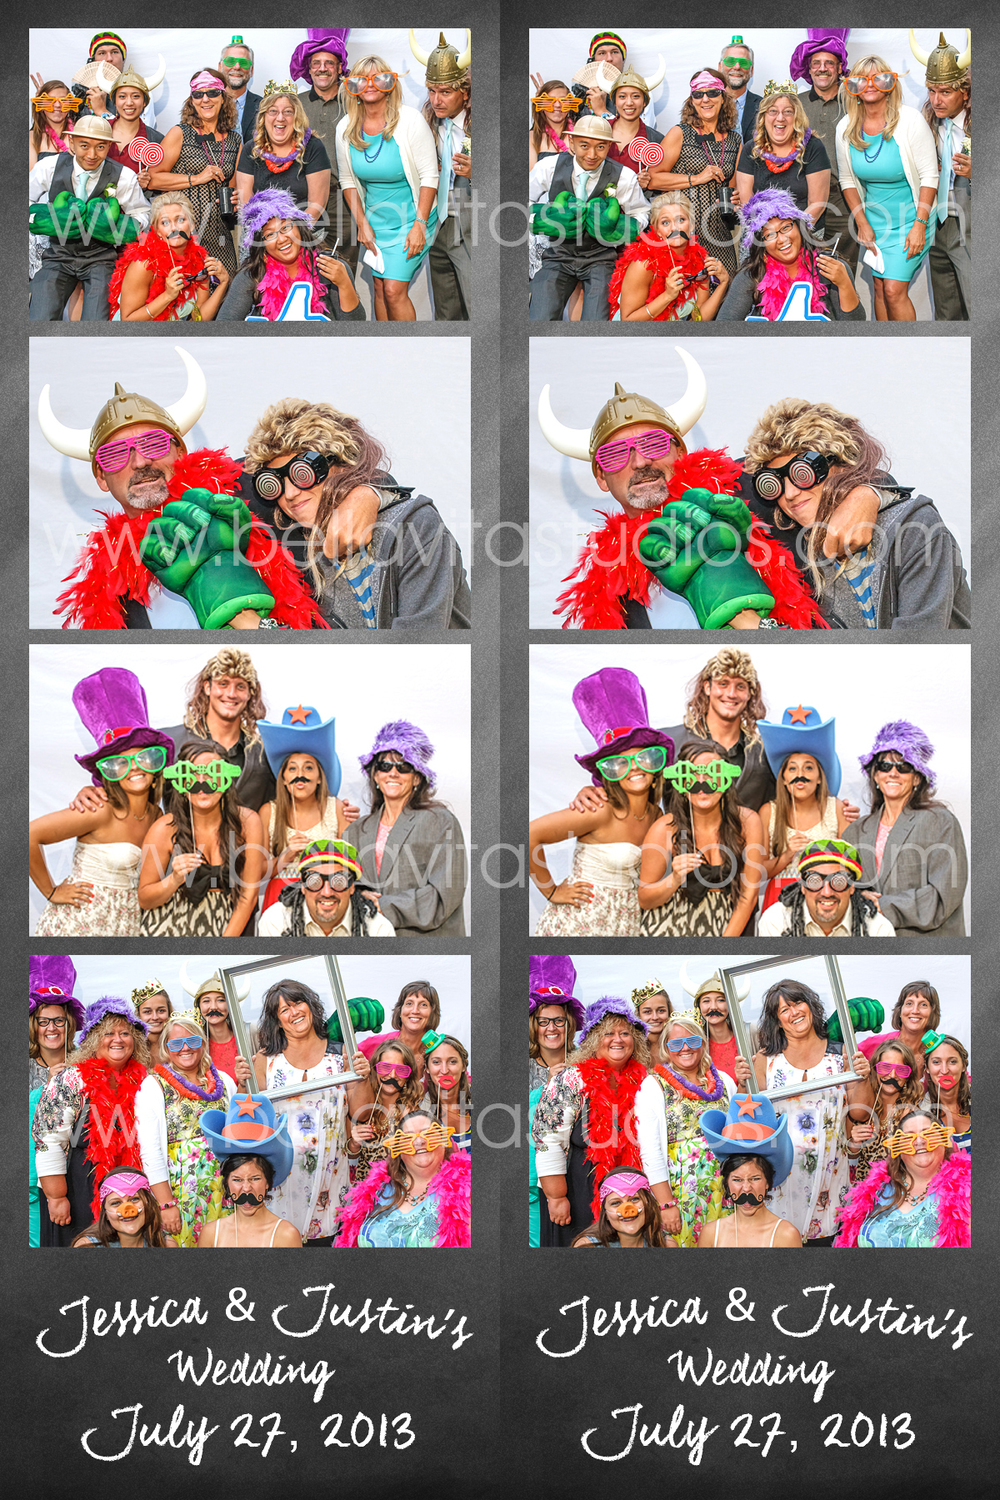 photobooth photo booth rental Fort Wayne Indiana Huntington Decatur Auburn Muncie